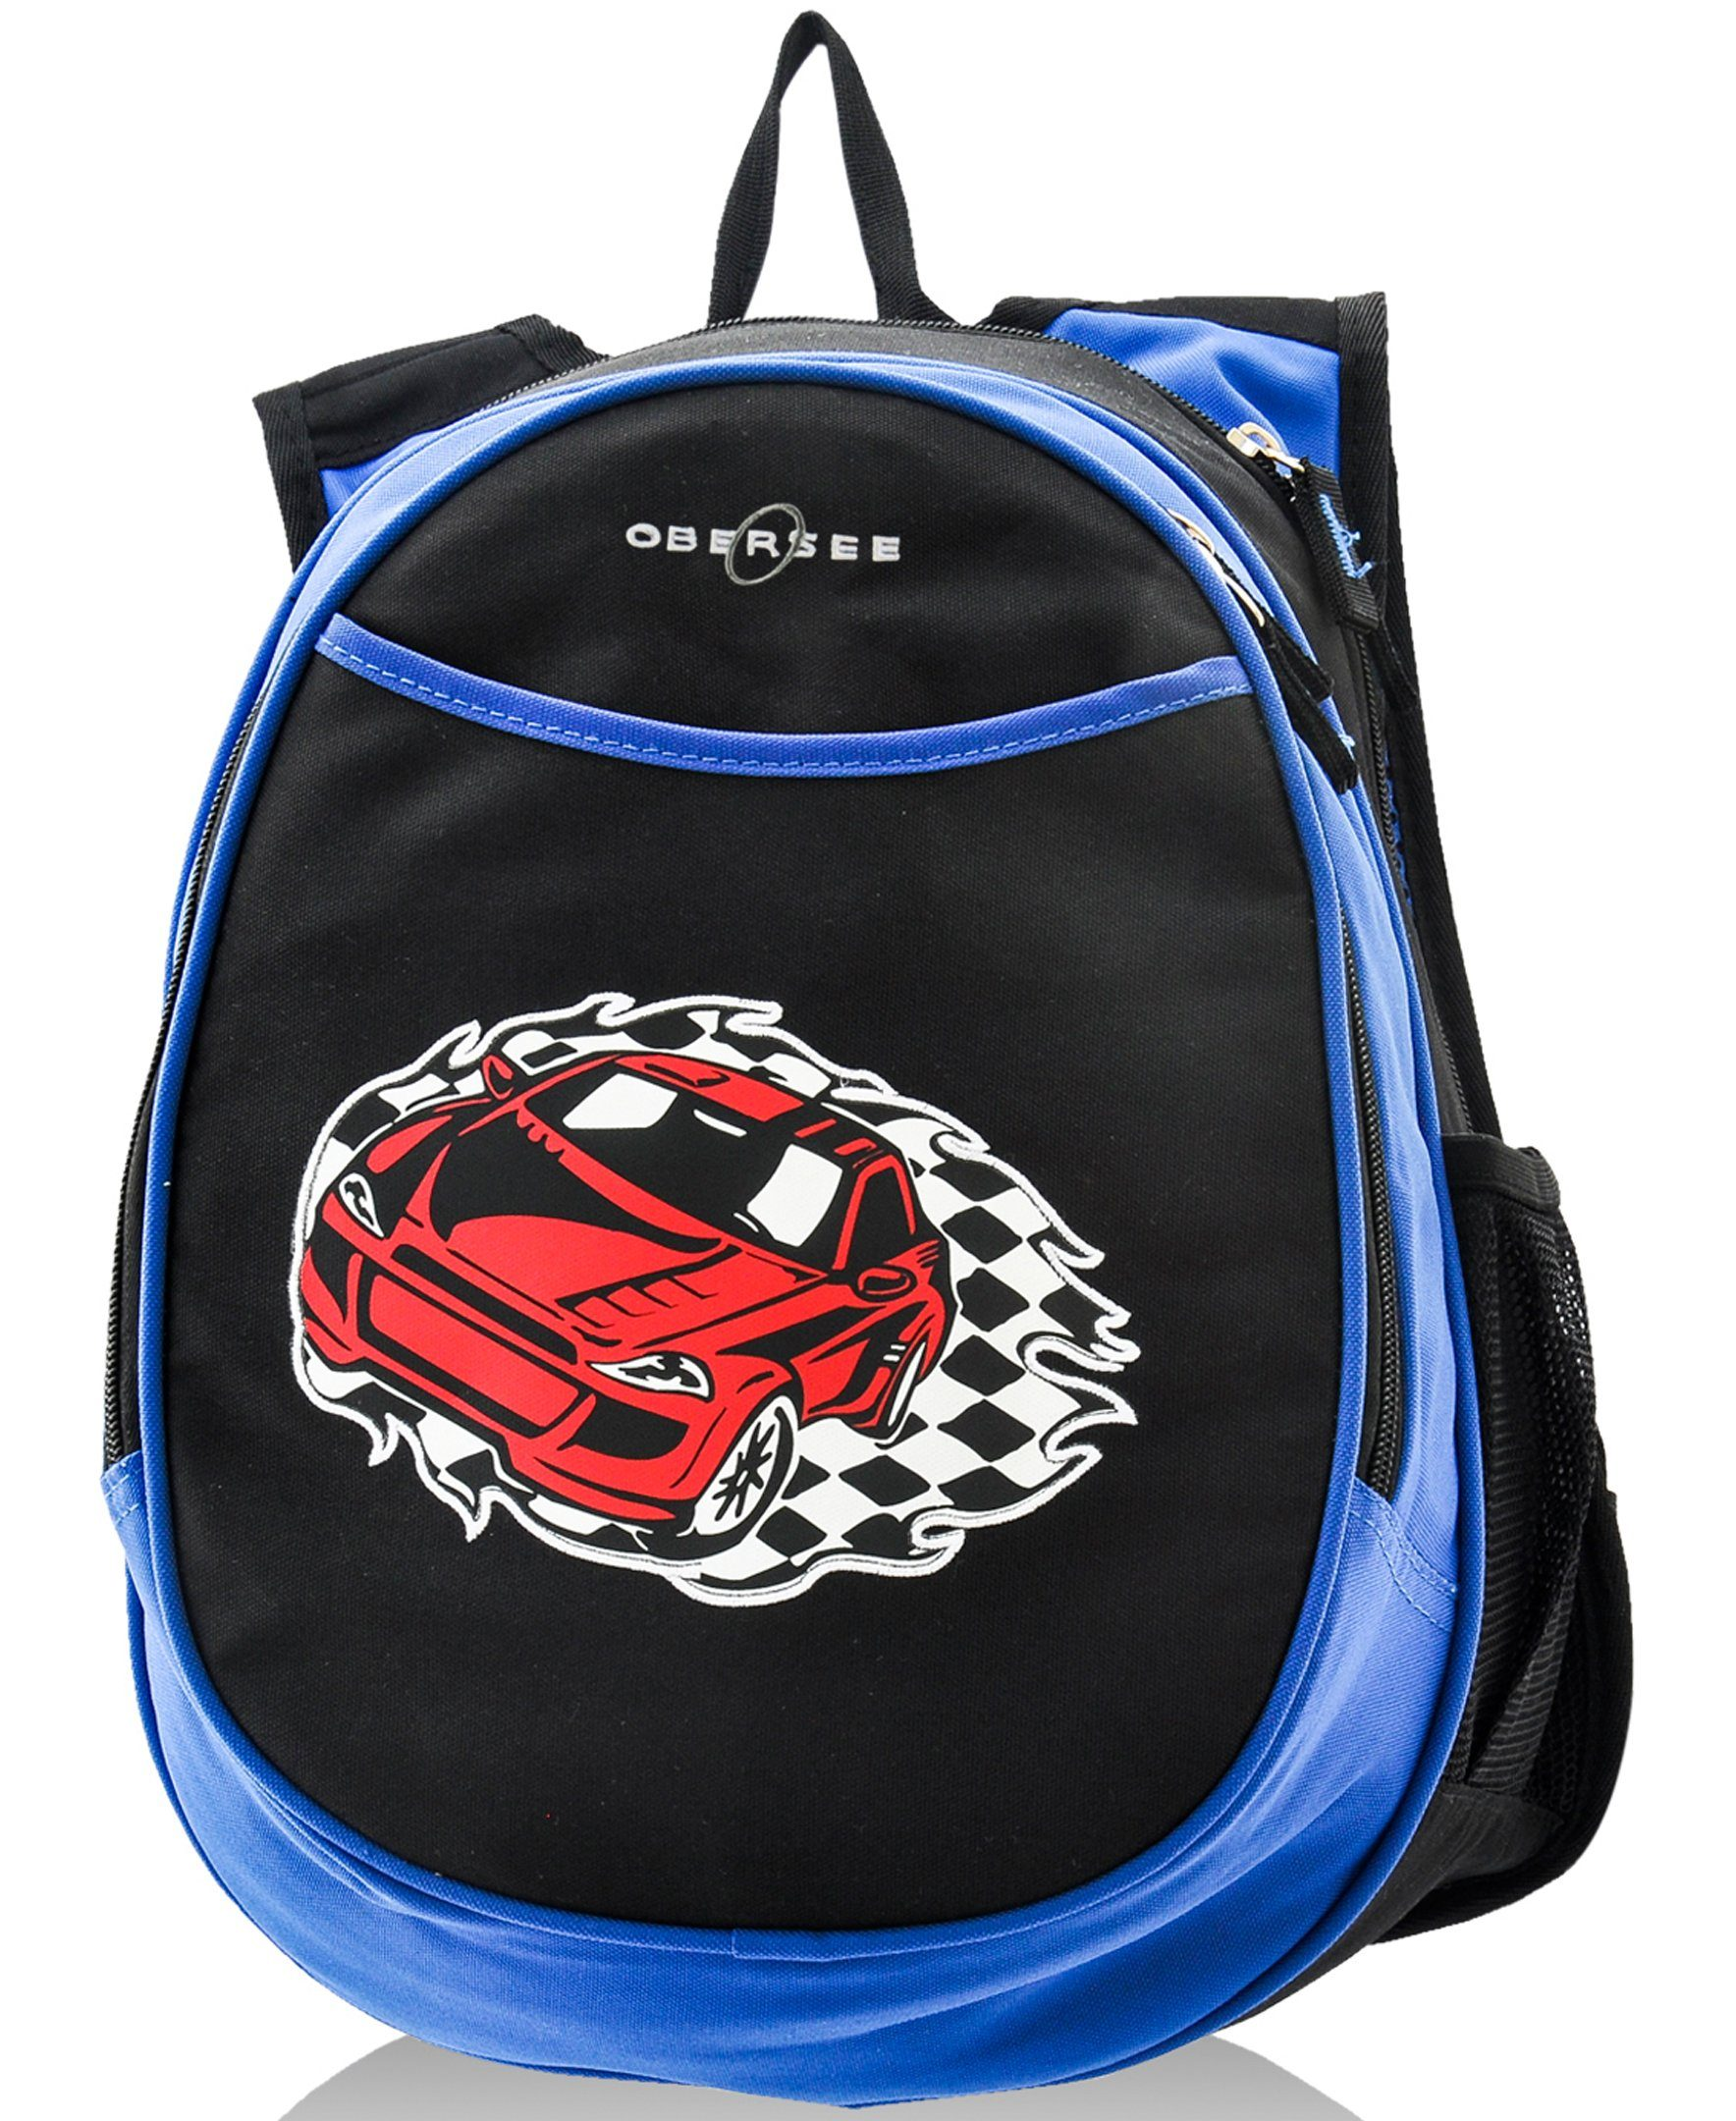 Obersee Kids Pre-School All-In-One Backpack With Cooler - Racecar